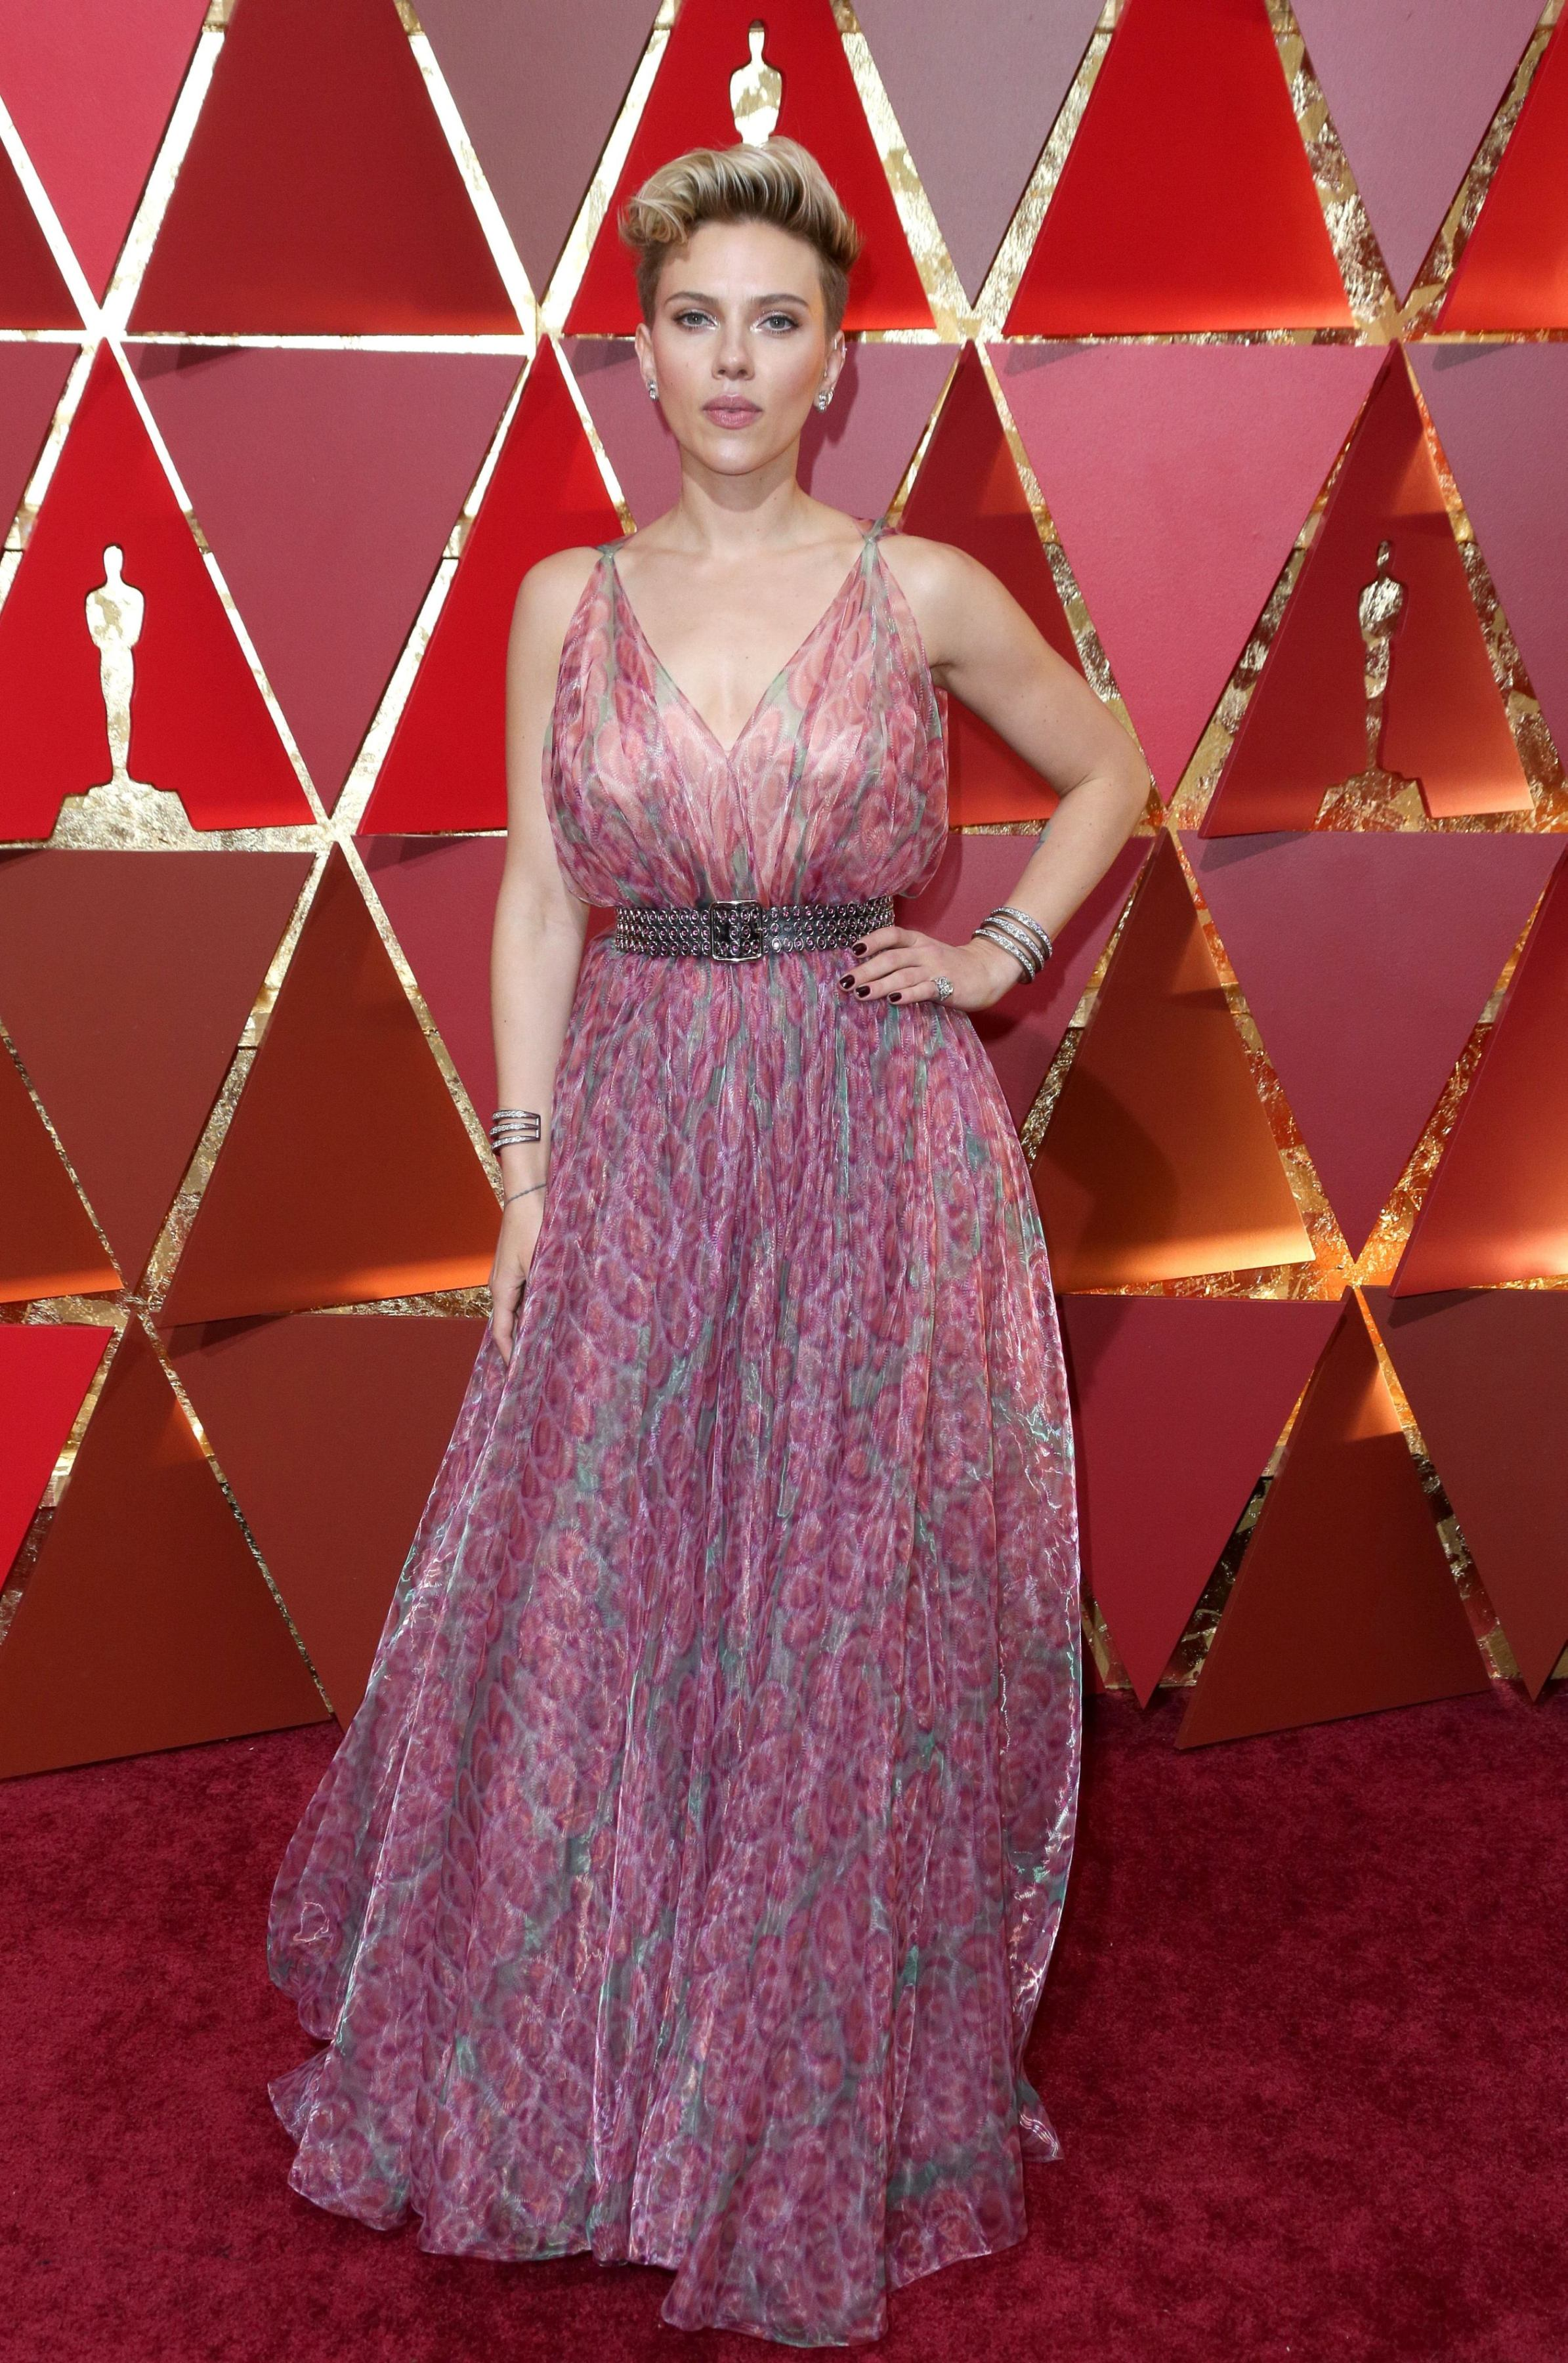 Mandatory Credit: Photo by Jim Smeal/BEI/Shutterstock (8434881hz) Scarlett Johansson 89th Annual Academy Awards, Arrivals, Los Angeles, USA - 26 Feb 2017